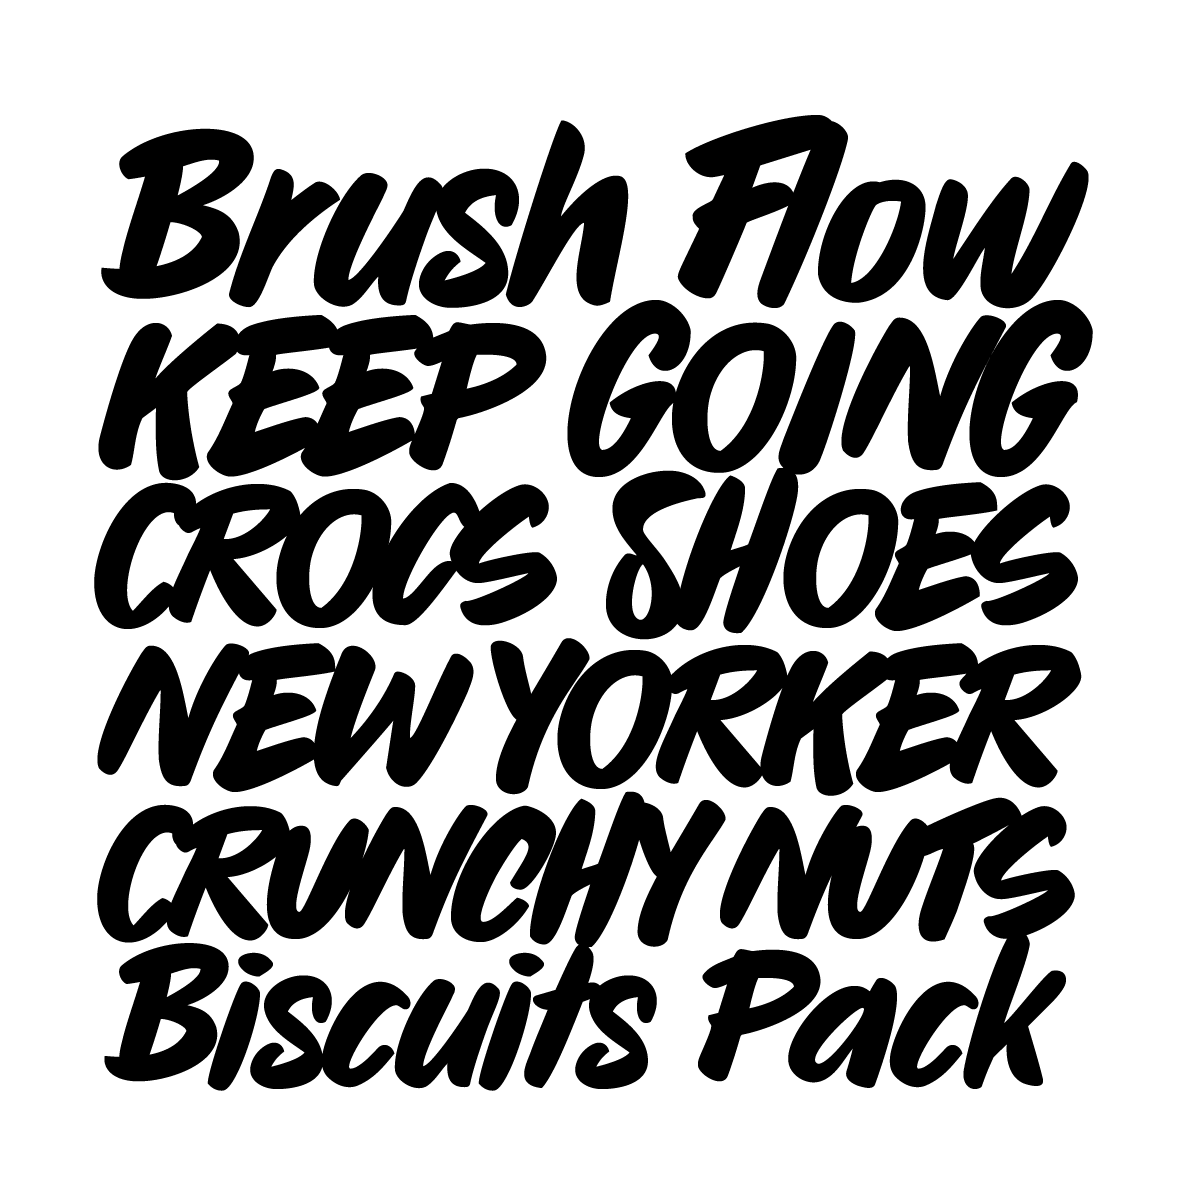 Sharpie Pro, a new hand drawn font by Andrei Robu for www.typeverything.com